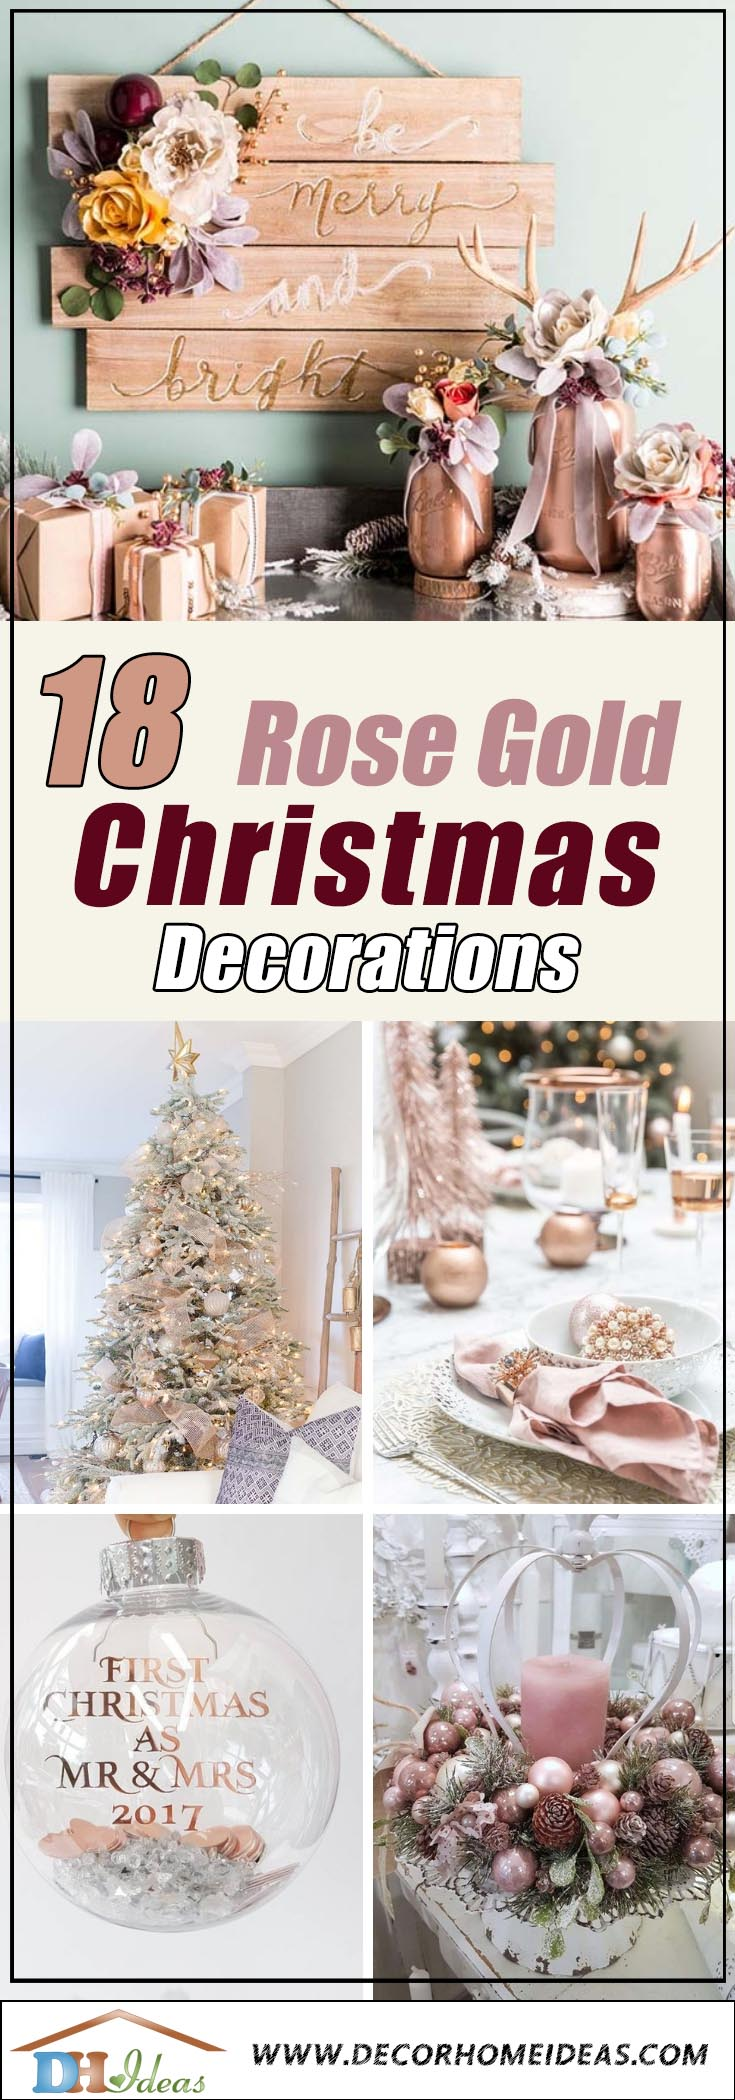 Rose Gold Christmas Decorations #rosegold #Christmas #Christmasdecor #rosegolddecor #decorhomeideas